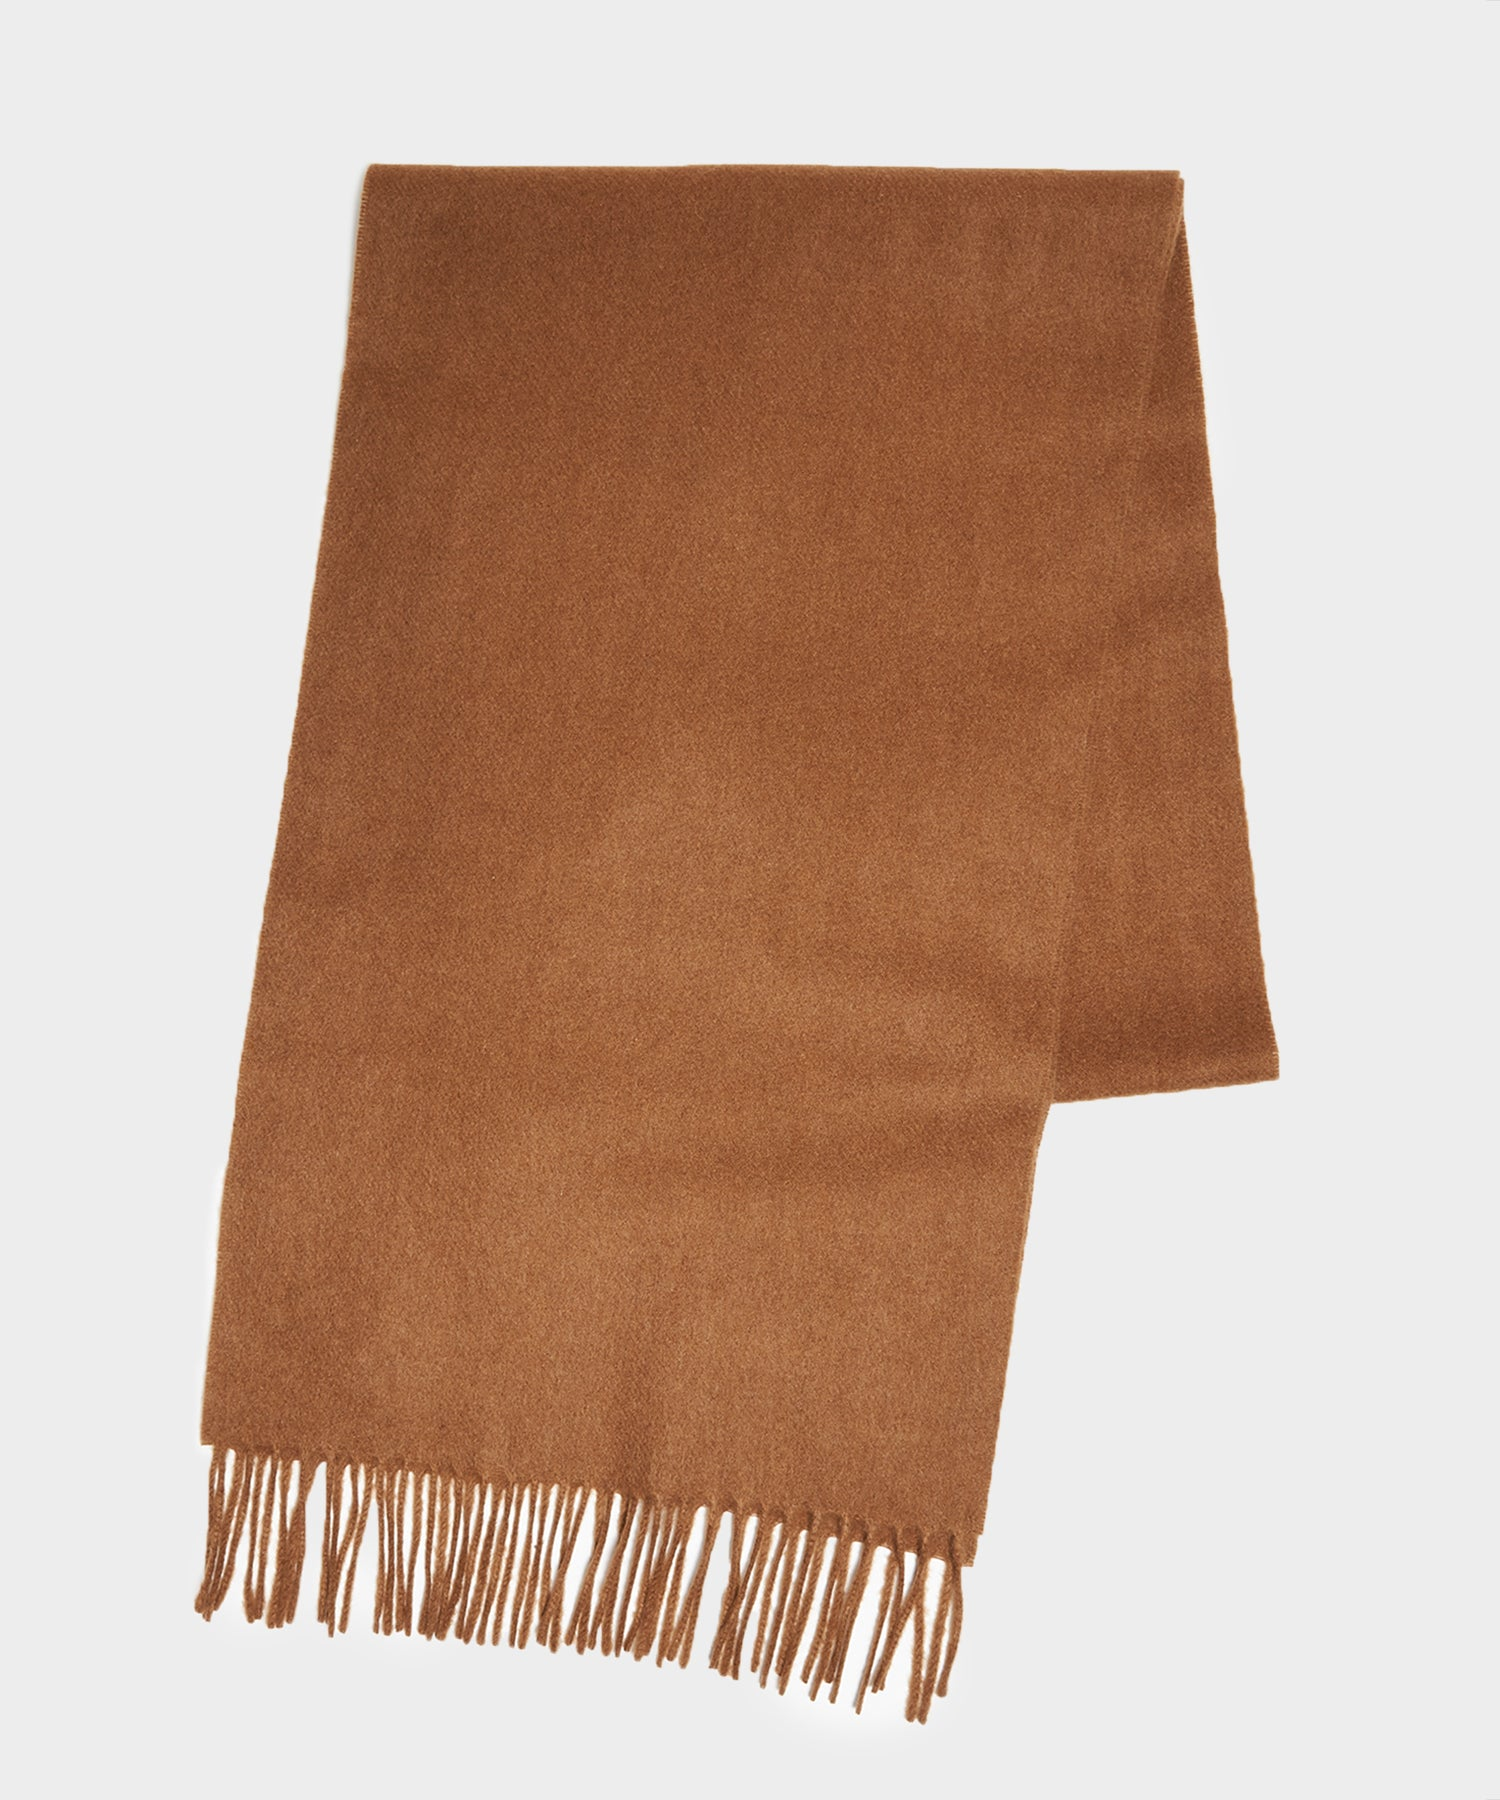 Joshua Ellis Solid Cashmere Scarf in Camel